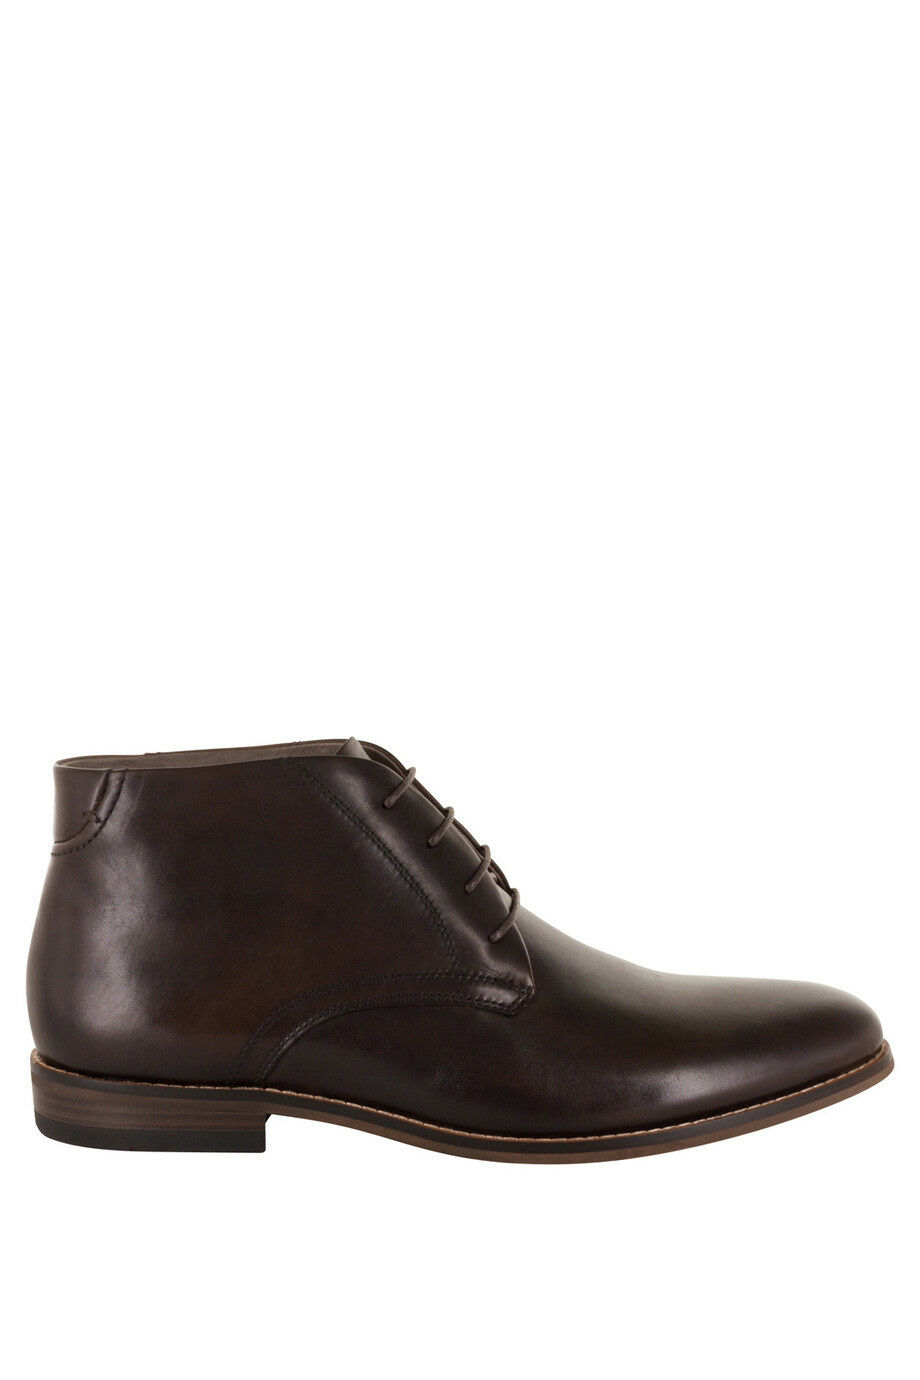 NEW Florsheim Baldwin Plain Vamp Chukka Dark Brown